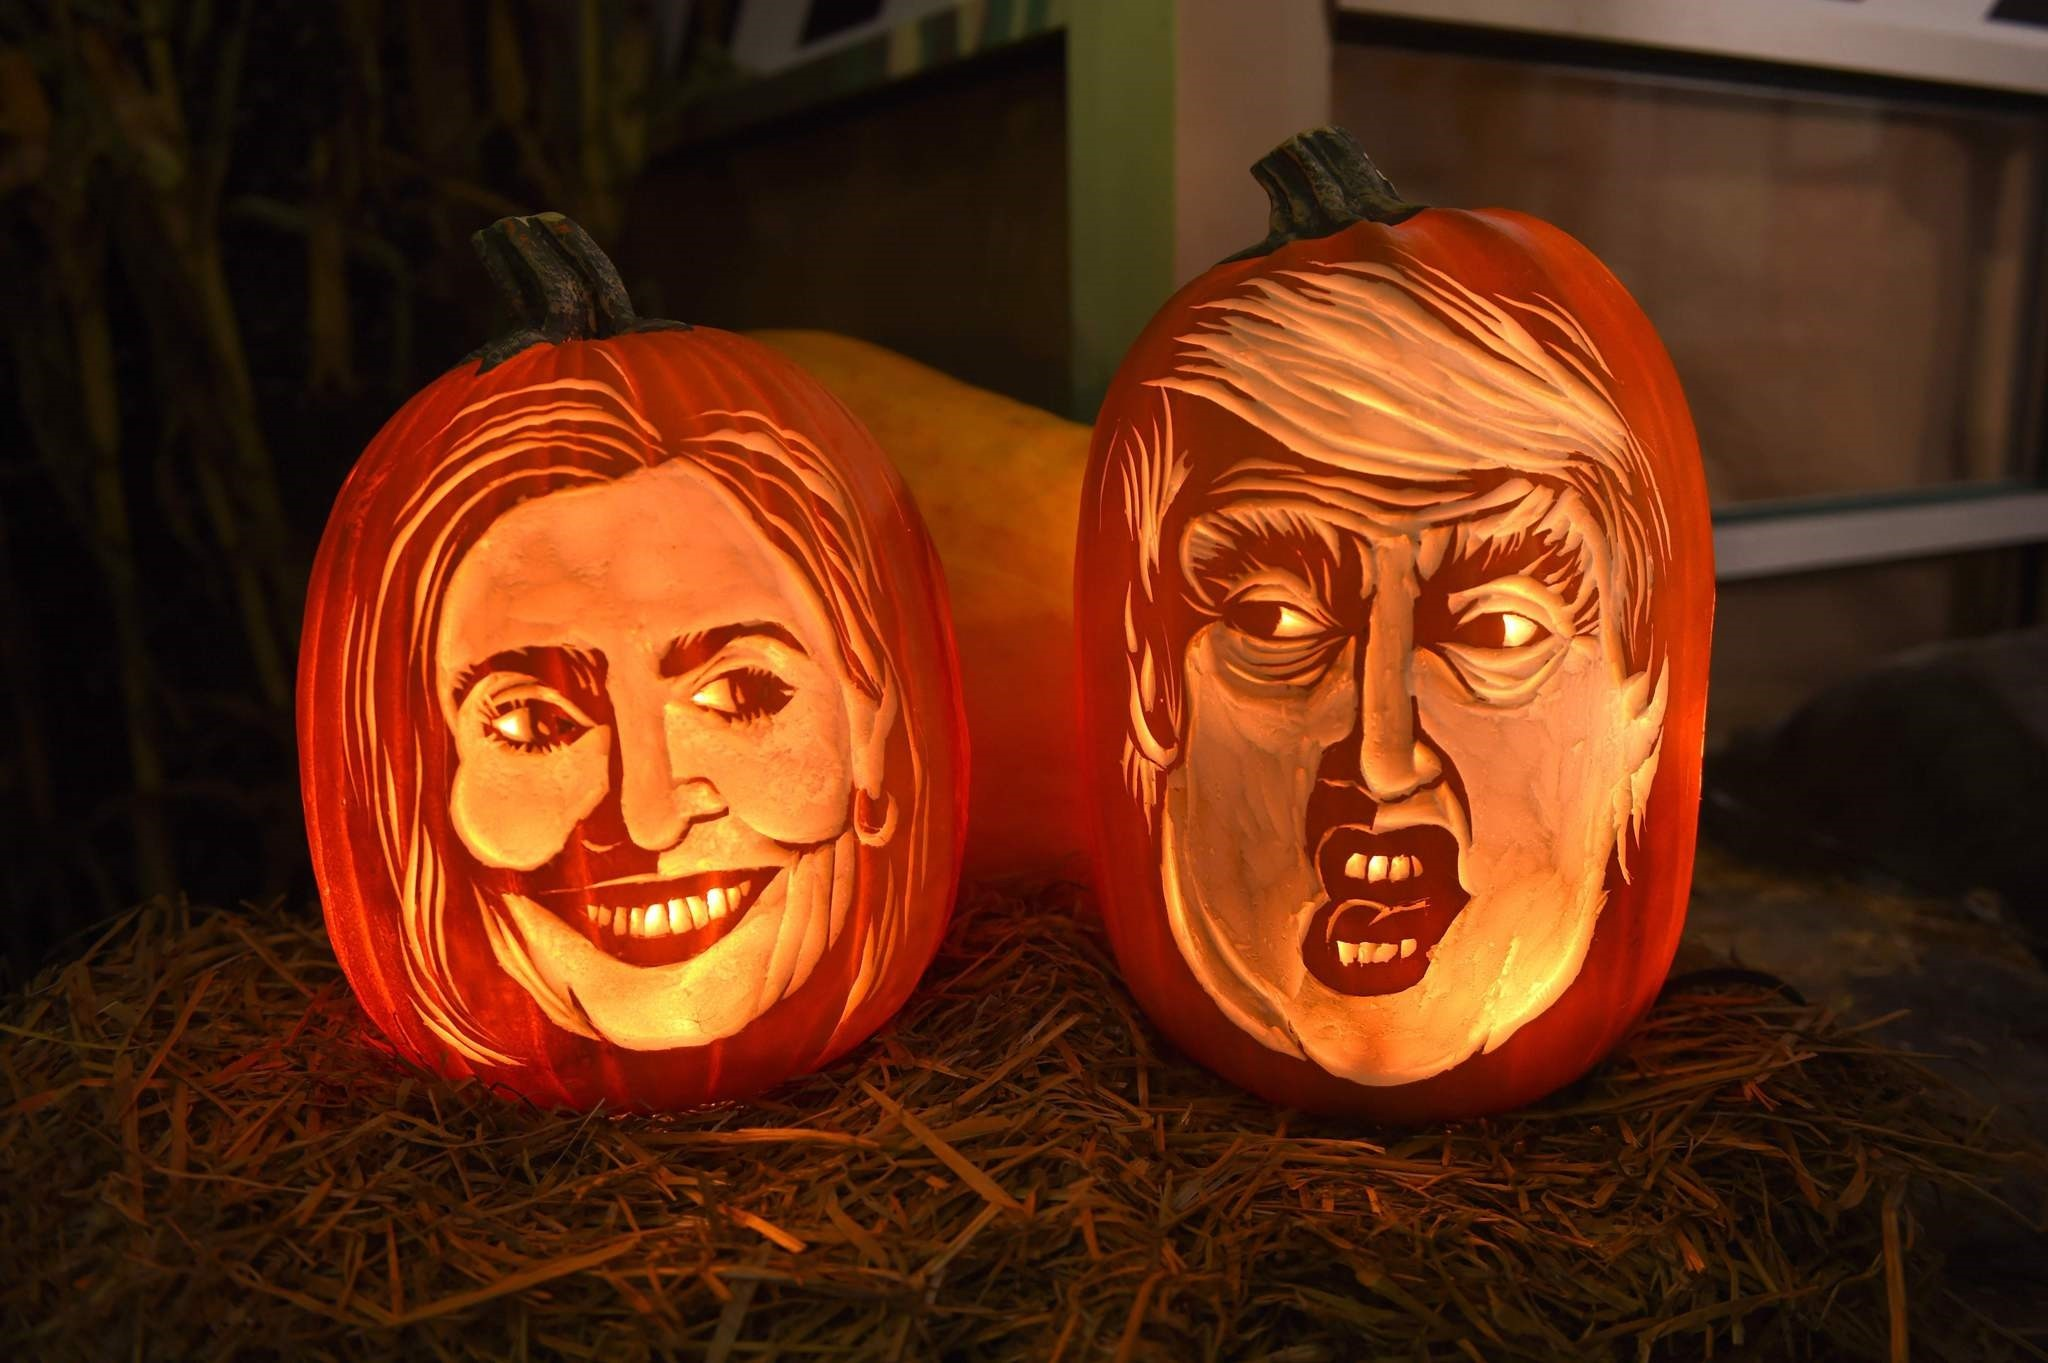 This file photo taken on October 28, 2016 shows styrofoam carvings on display of Democratic presidential nominee Hillary Clinton and her Republican counterpart Donald Trump at the Chelsea Market in New York. (AFP Photo)